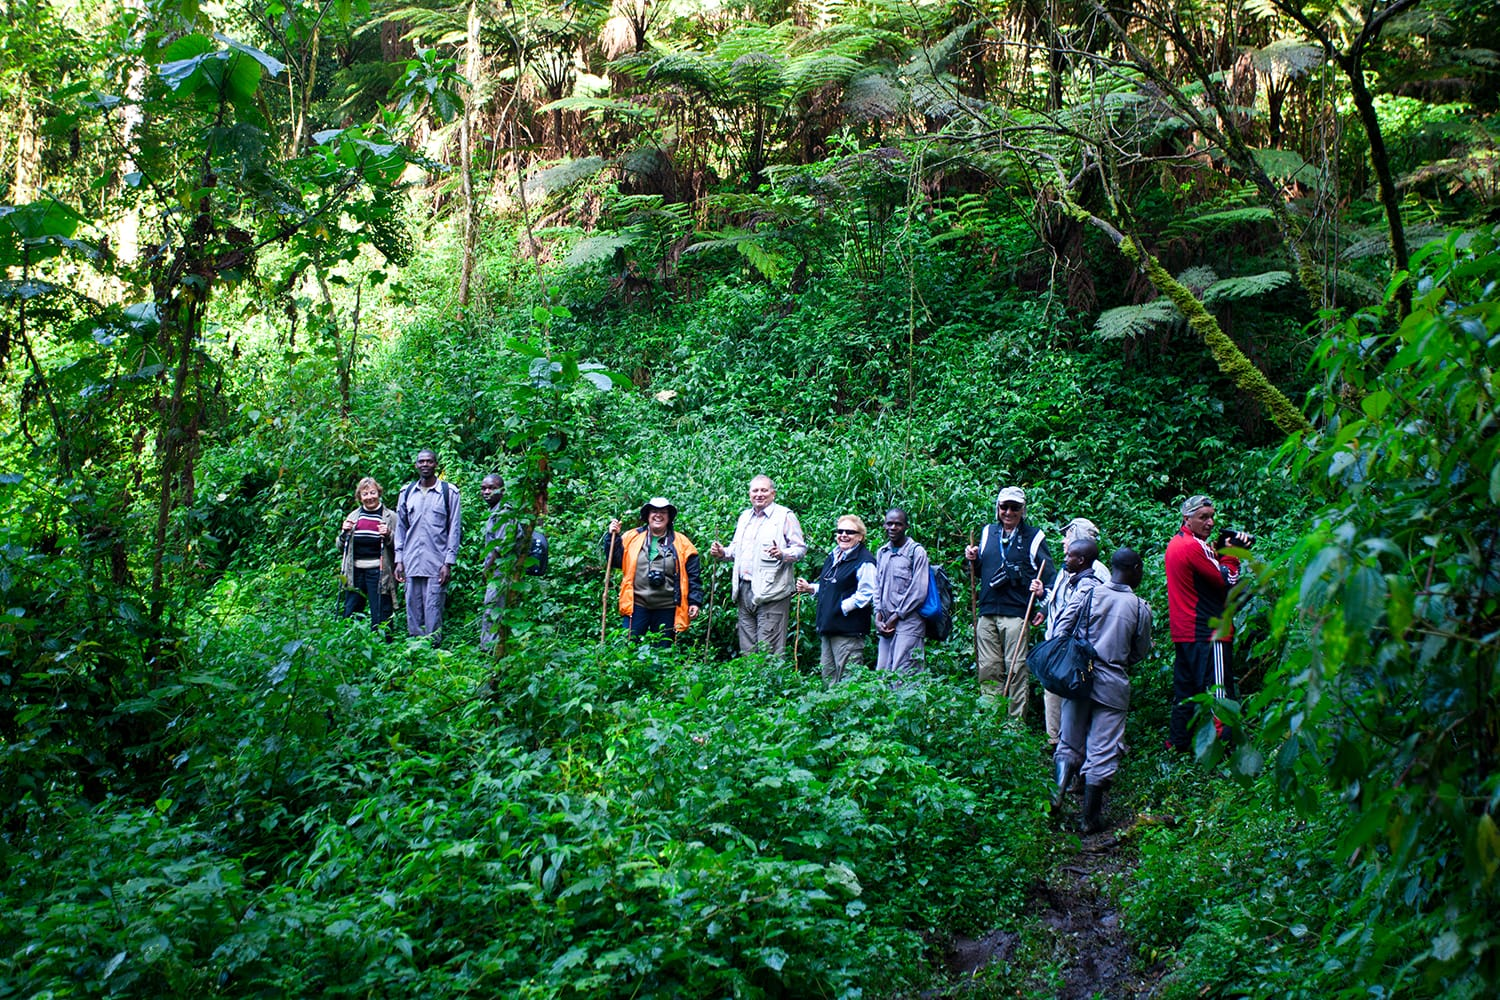 Unidentified tourists on gorilla trekking in the African rainforest in Bwindi Impenetrable Forest National Park, at the borders of Uganda, Congo and Rwanda.